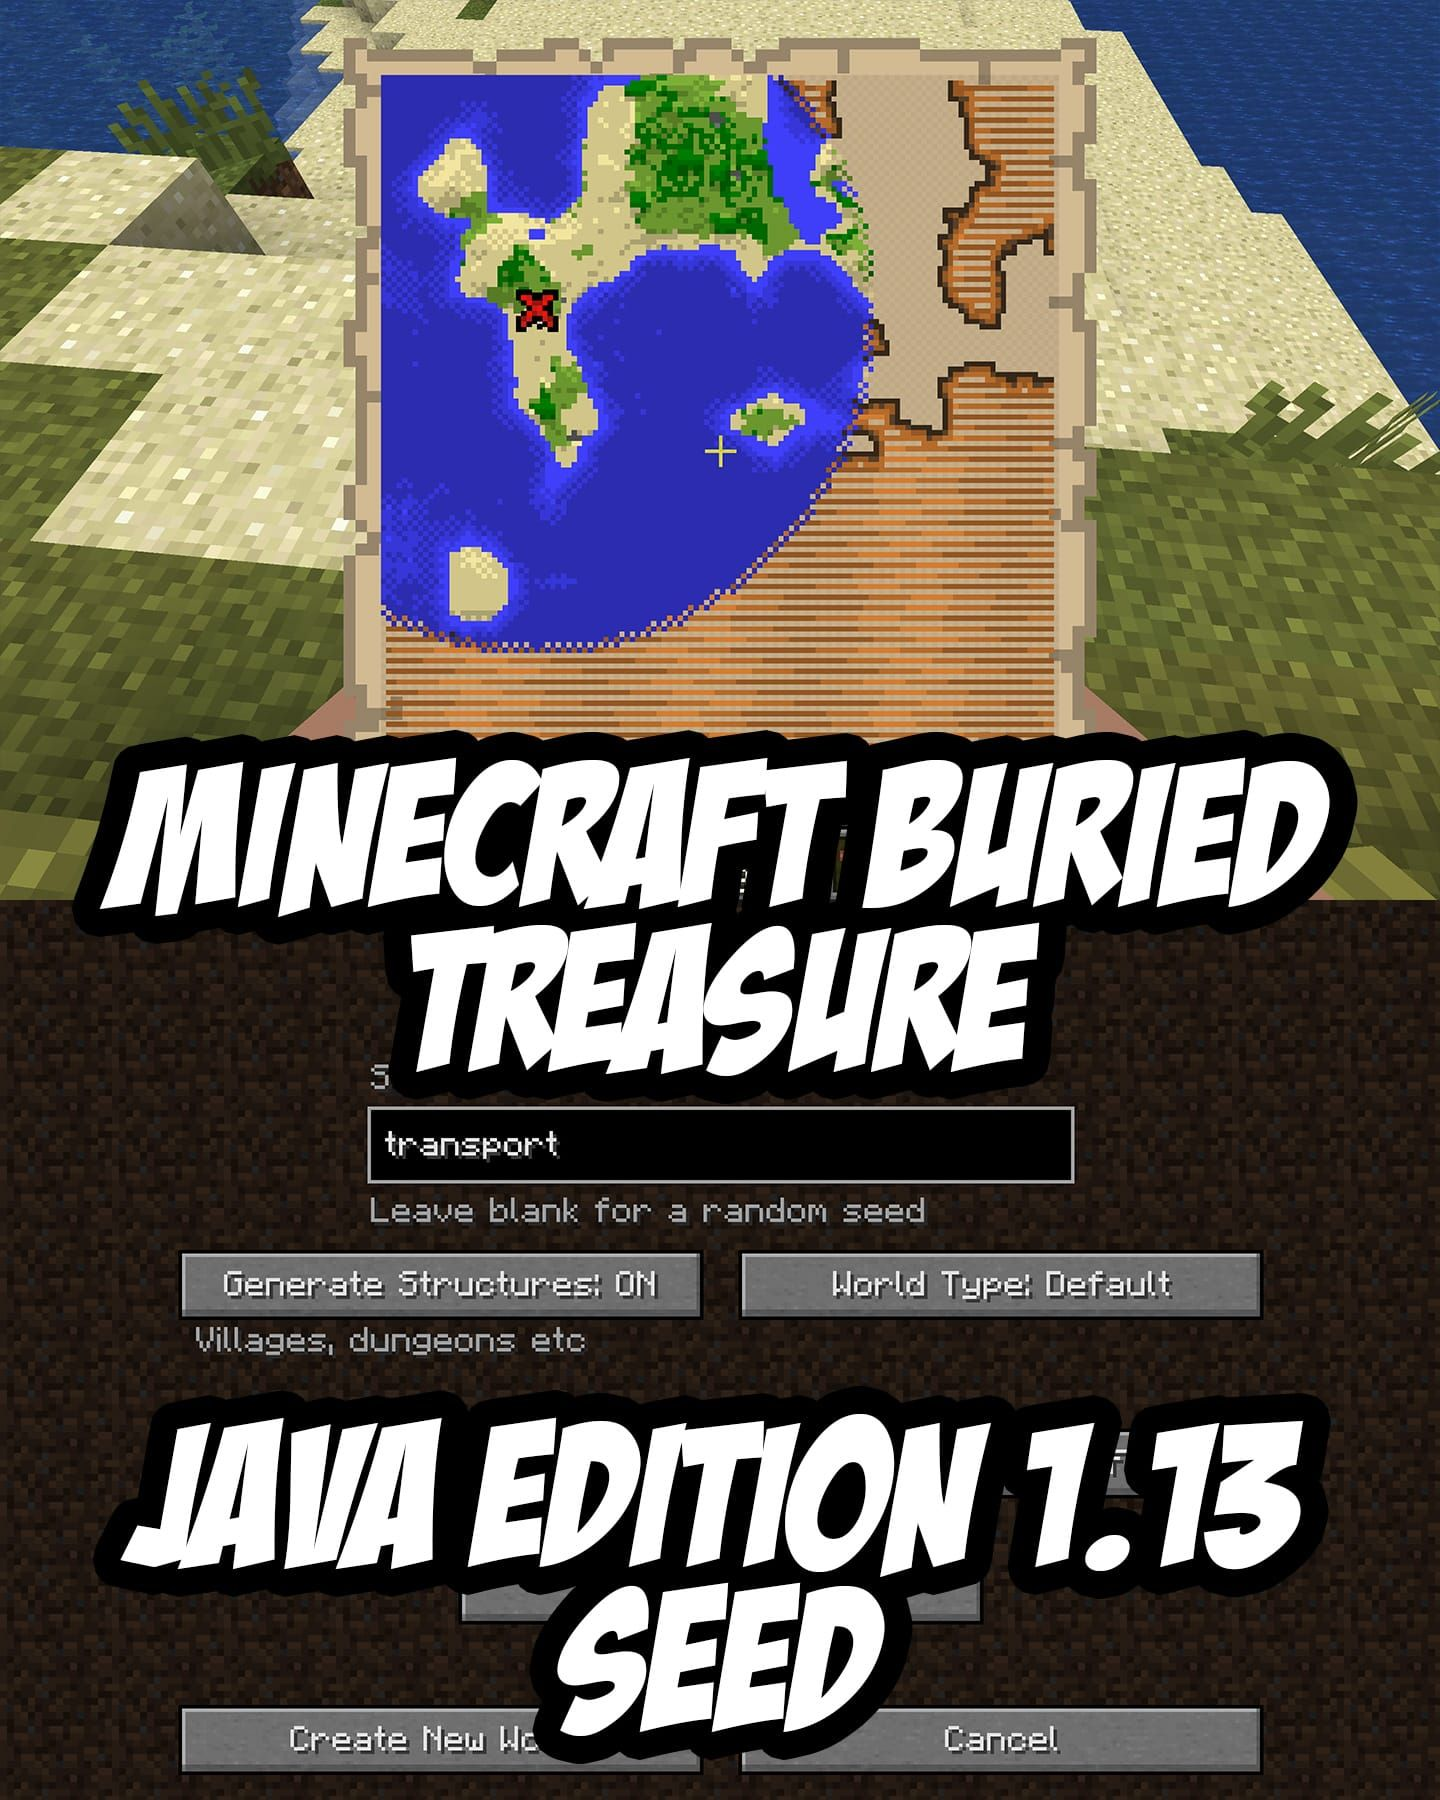 Minecraft java edition 113 buried treasure map seedtransport or minecraft java edition 113 buried treasure map seedtransport or by number gumiabroncs Image collections